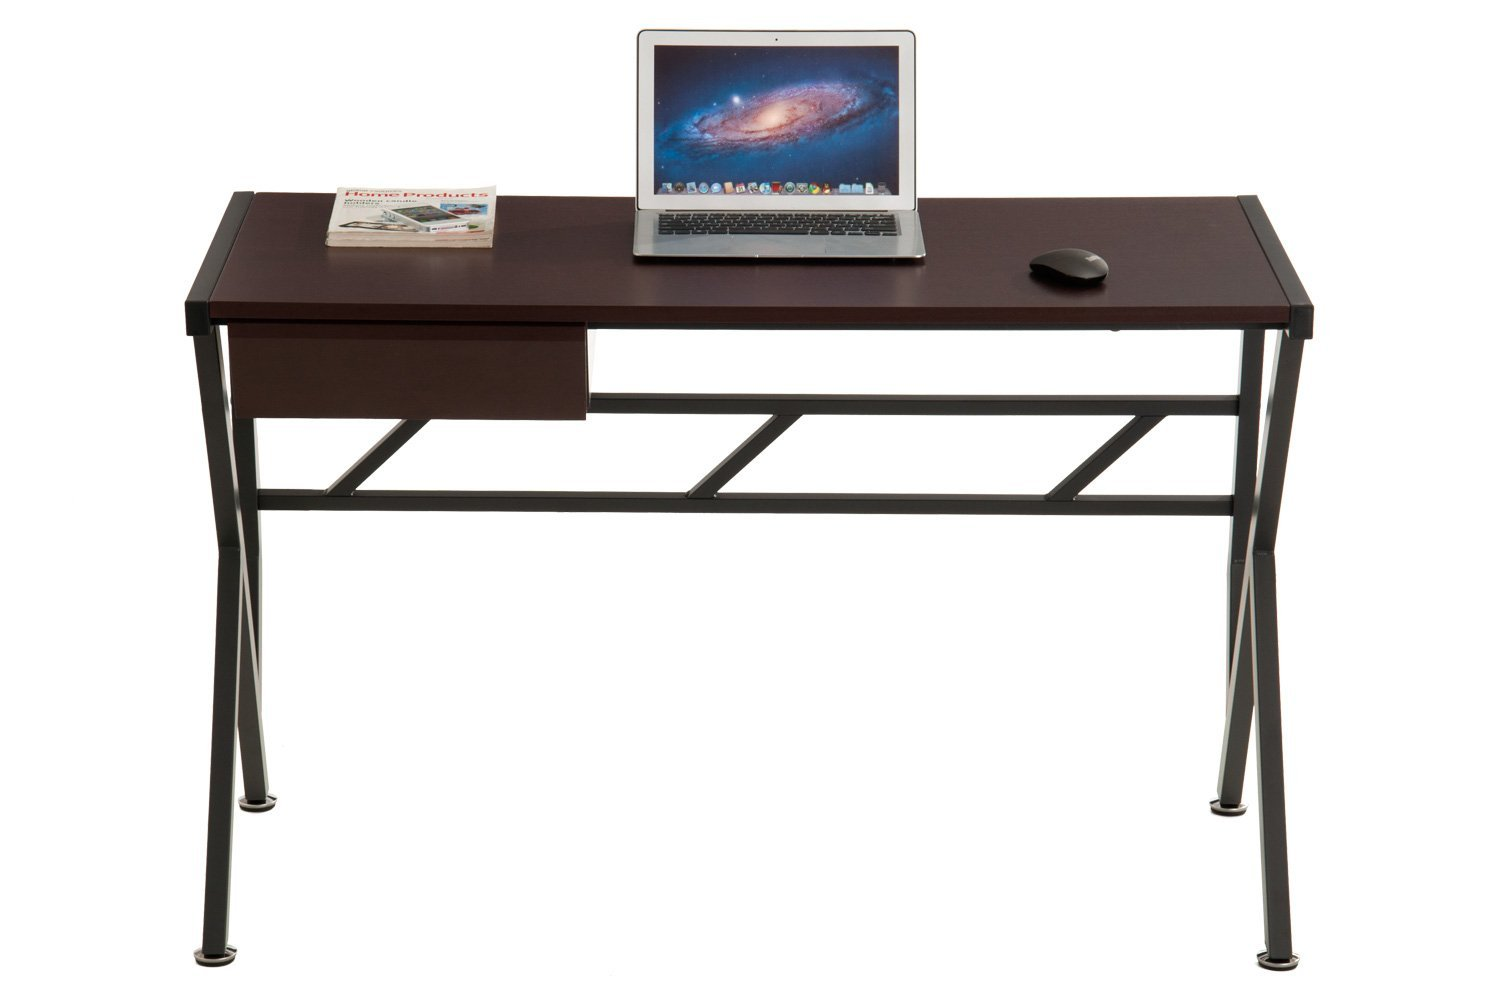 ProHT Compact Office Computer Writing Desk, Small Desk with a Pullout Drawer, Computer Workstation Laptop Desk for Small Place, Durable Frame, CARB Certified (Coffee Brown 05004AAA)